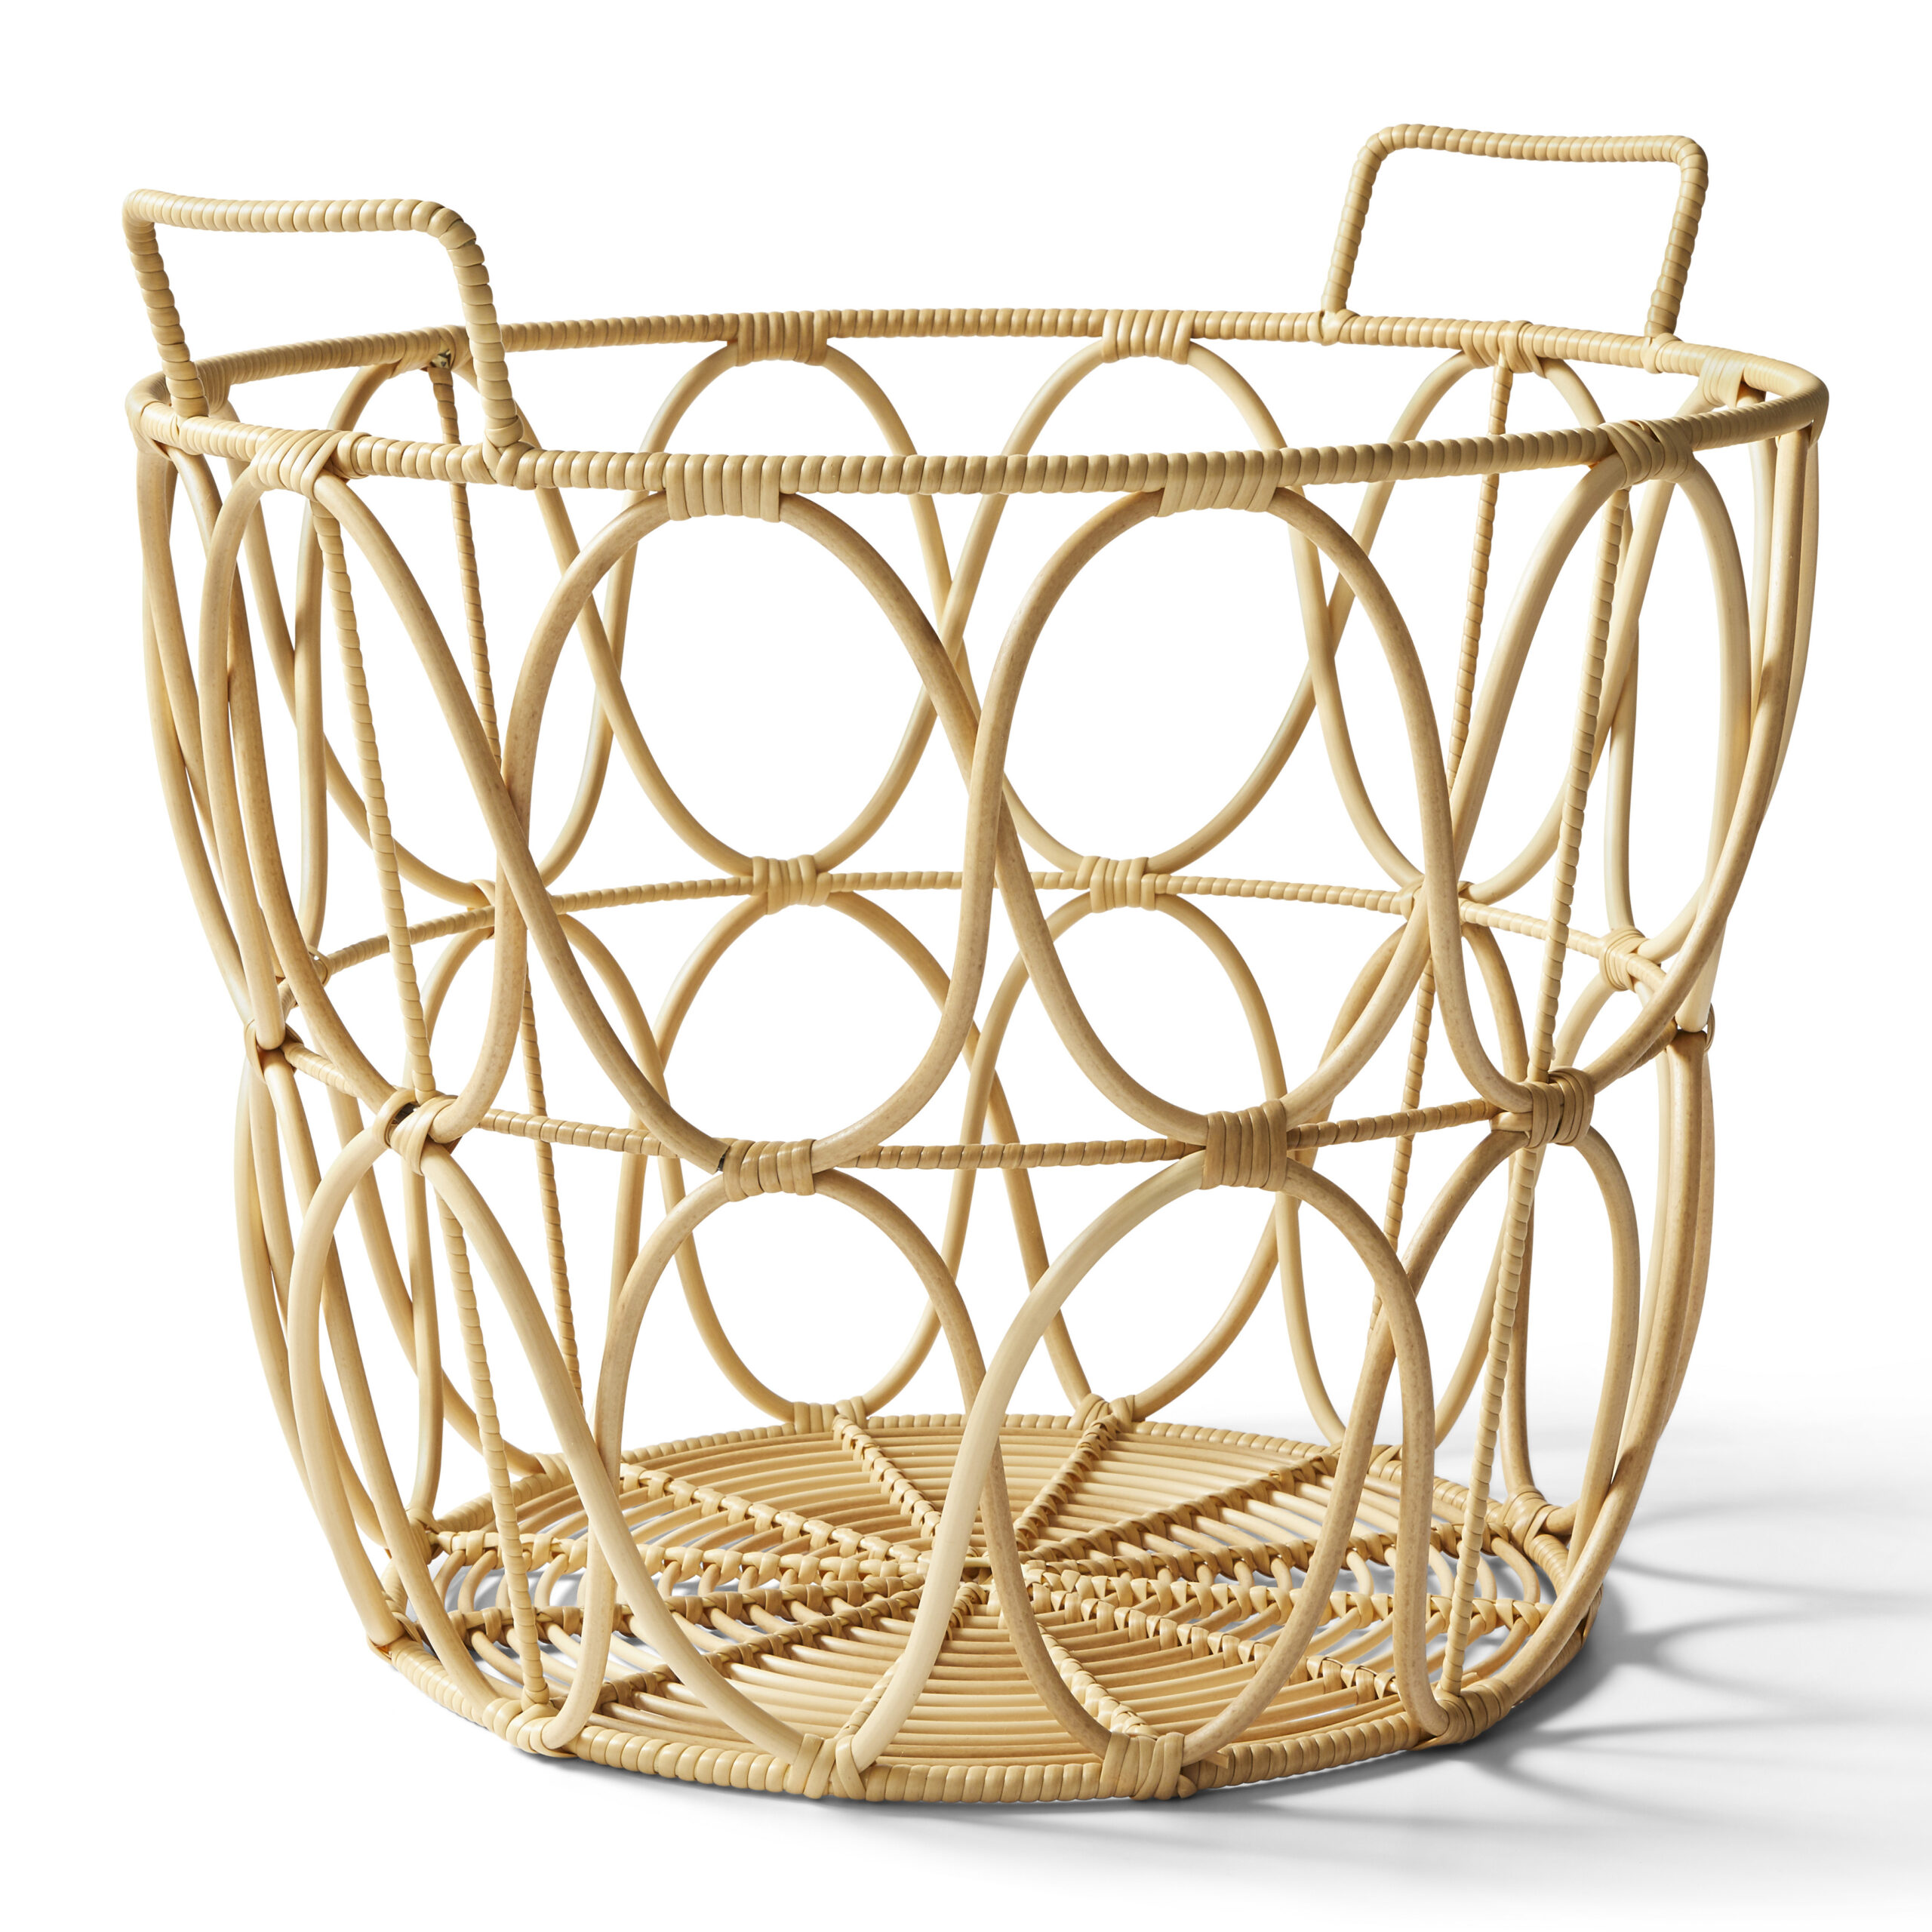 Large Natural Poly Rattan Open Weave Round Basket $24.99